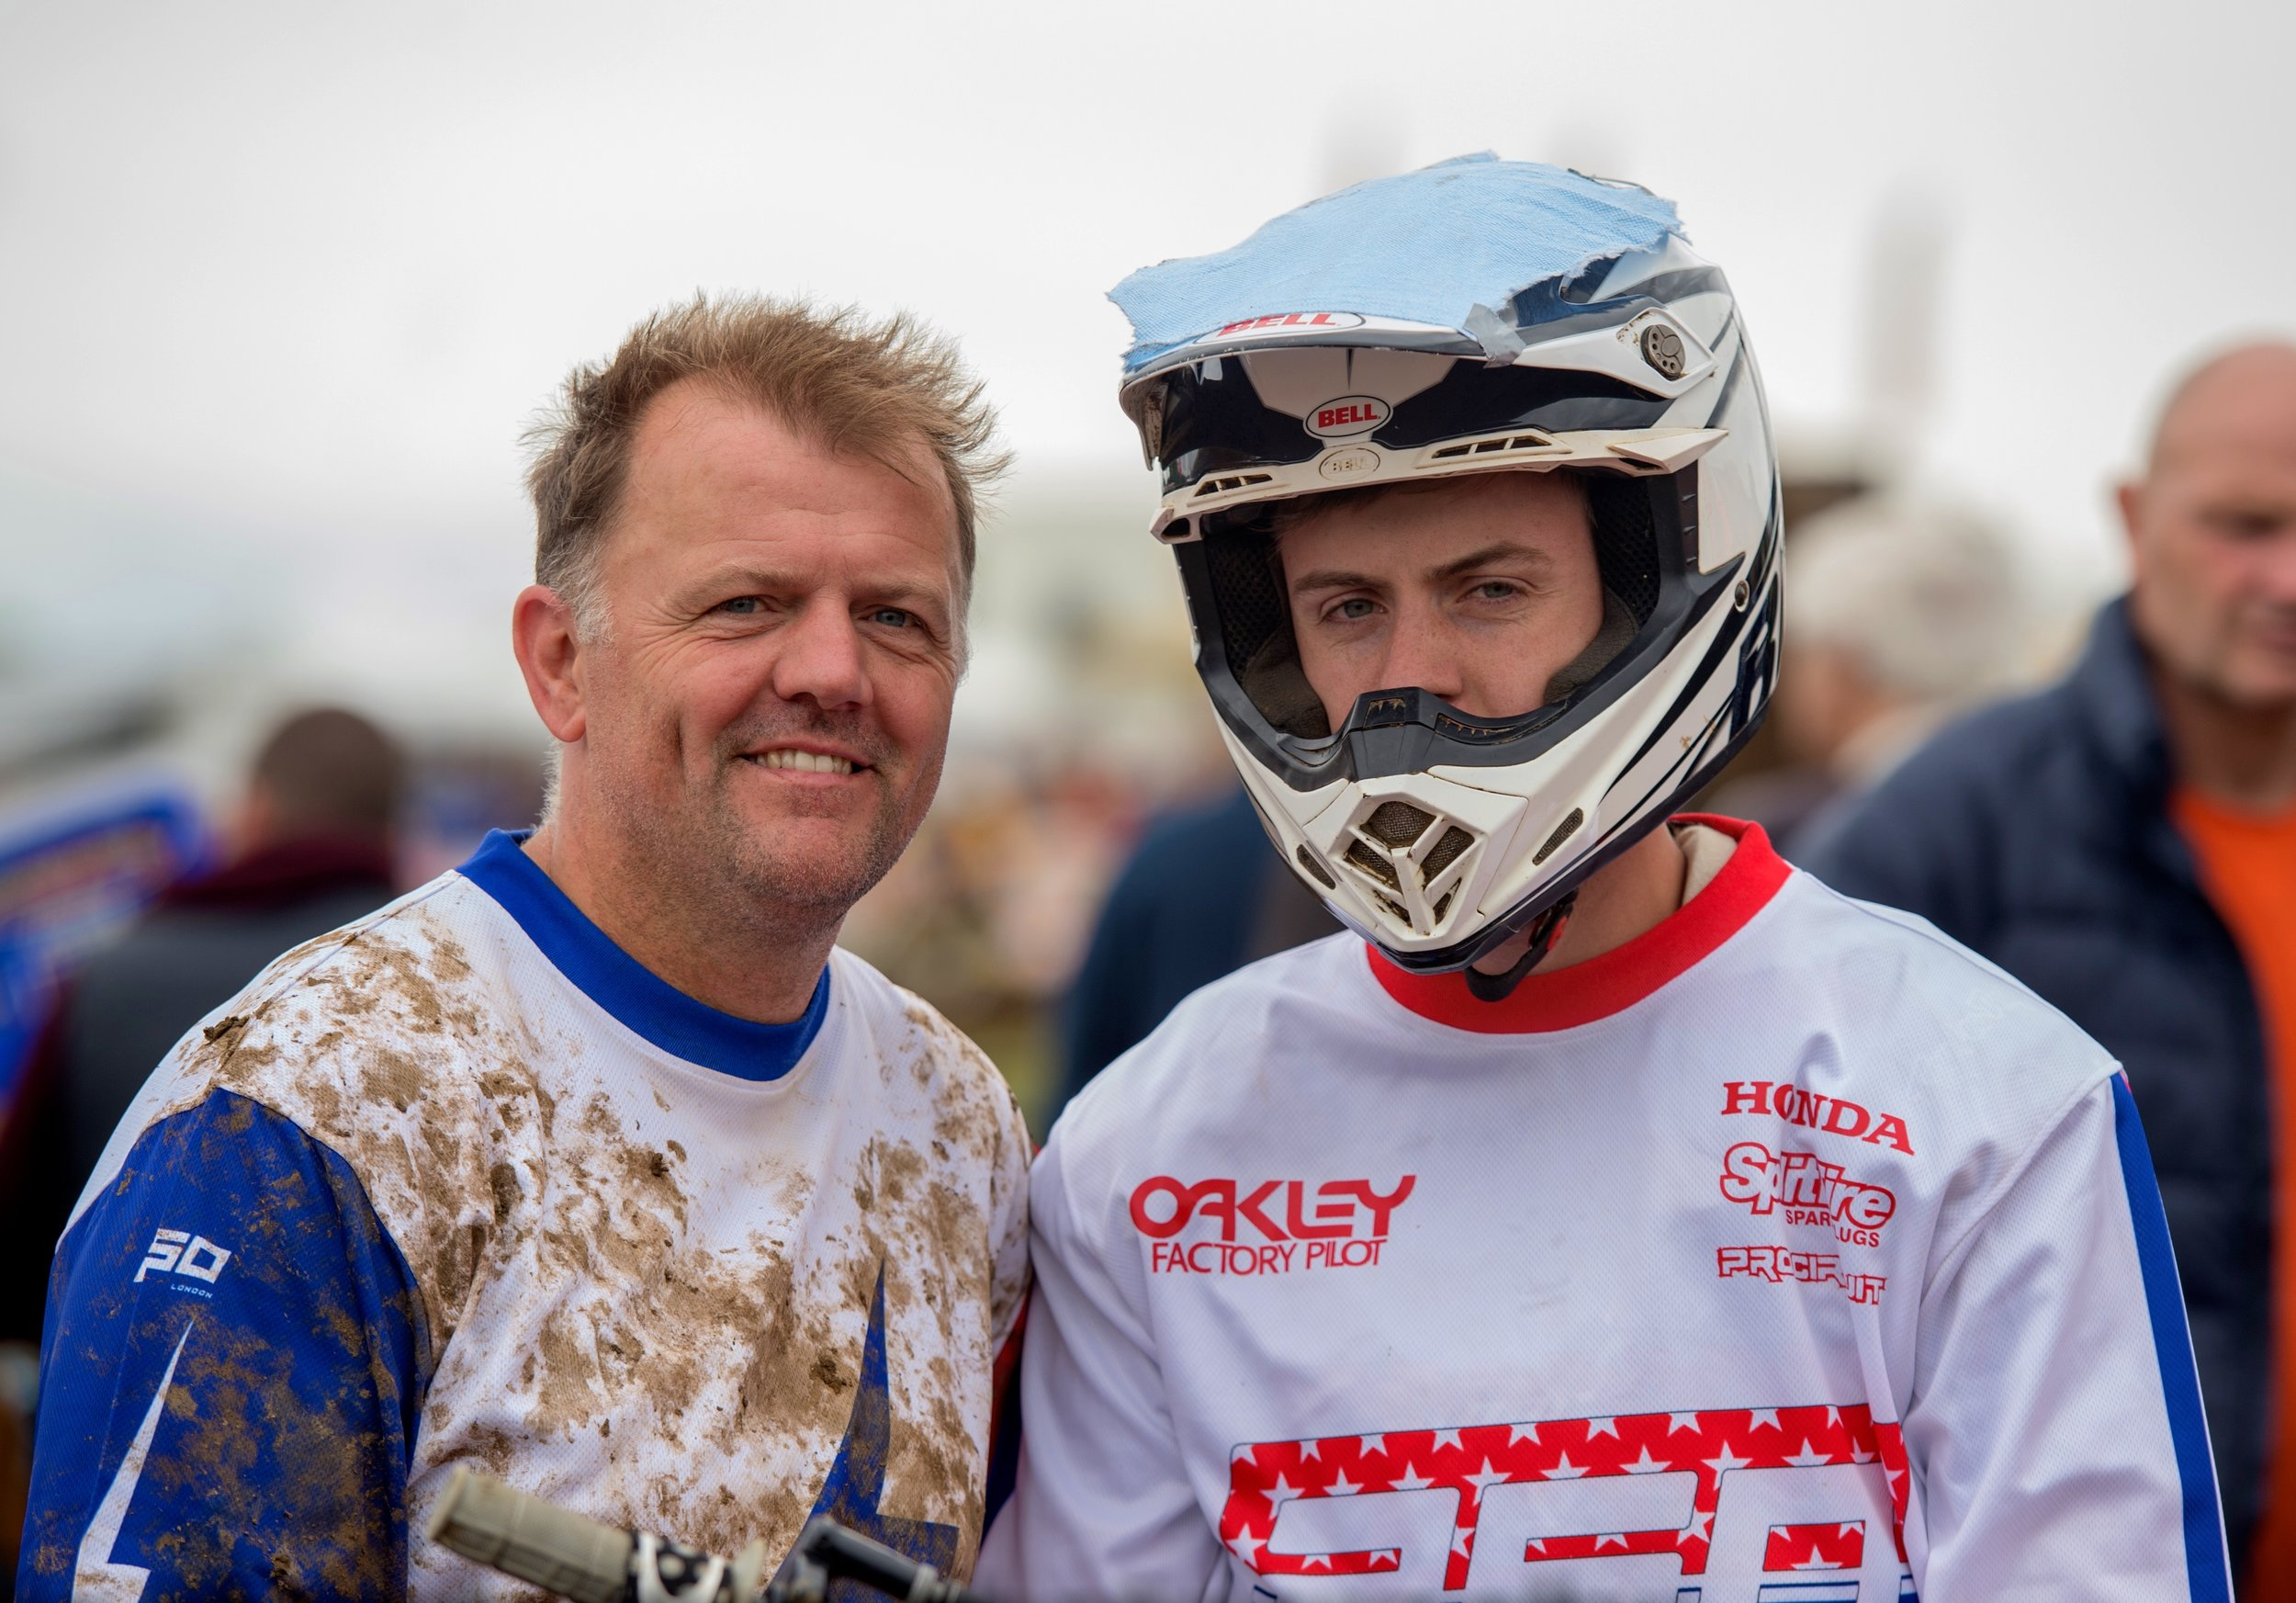 Bradley with his Dad Sean, who also races, what a cool team!